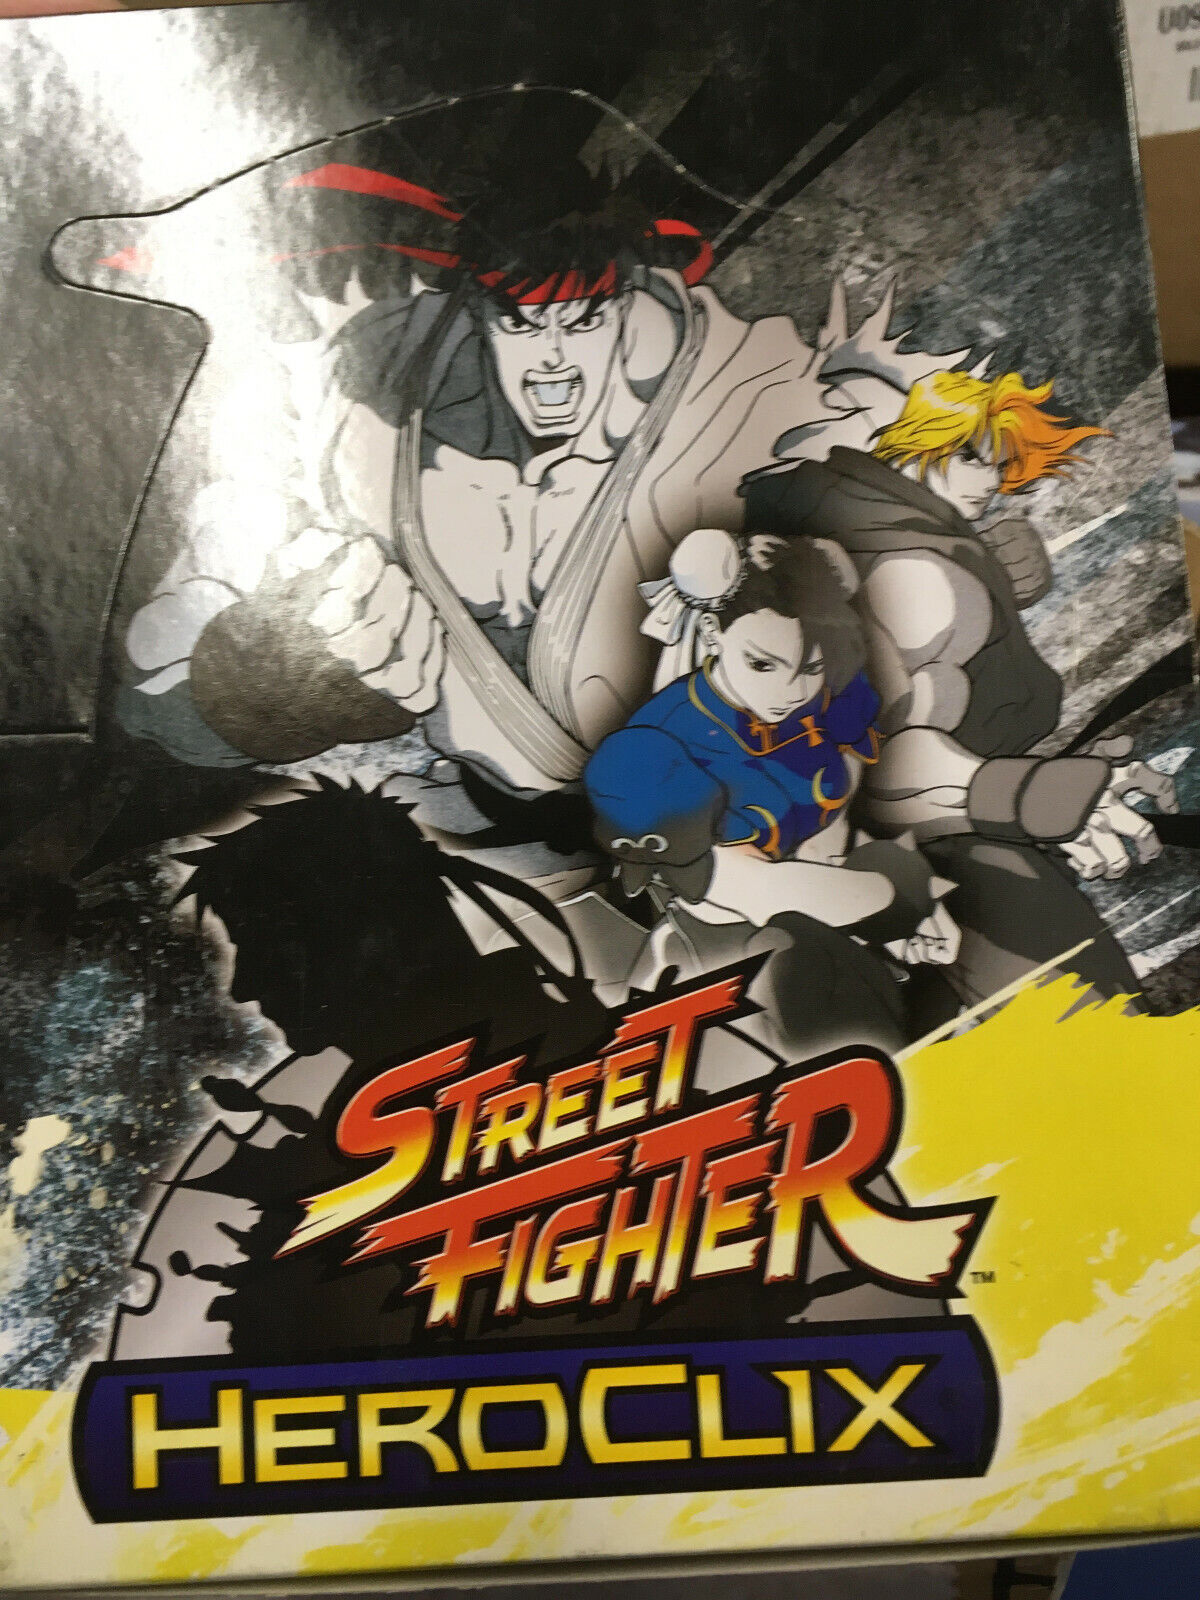 colores increíbles Street Street Street Fighter Heroclix-Booster Box of 24 Figuras  clásico atemporal